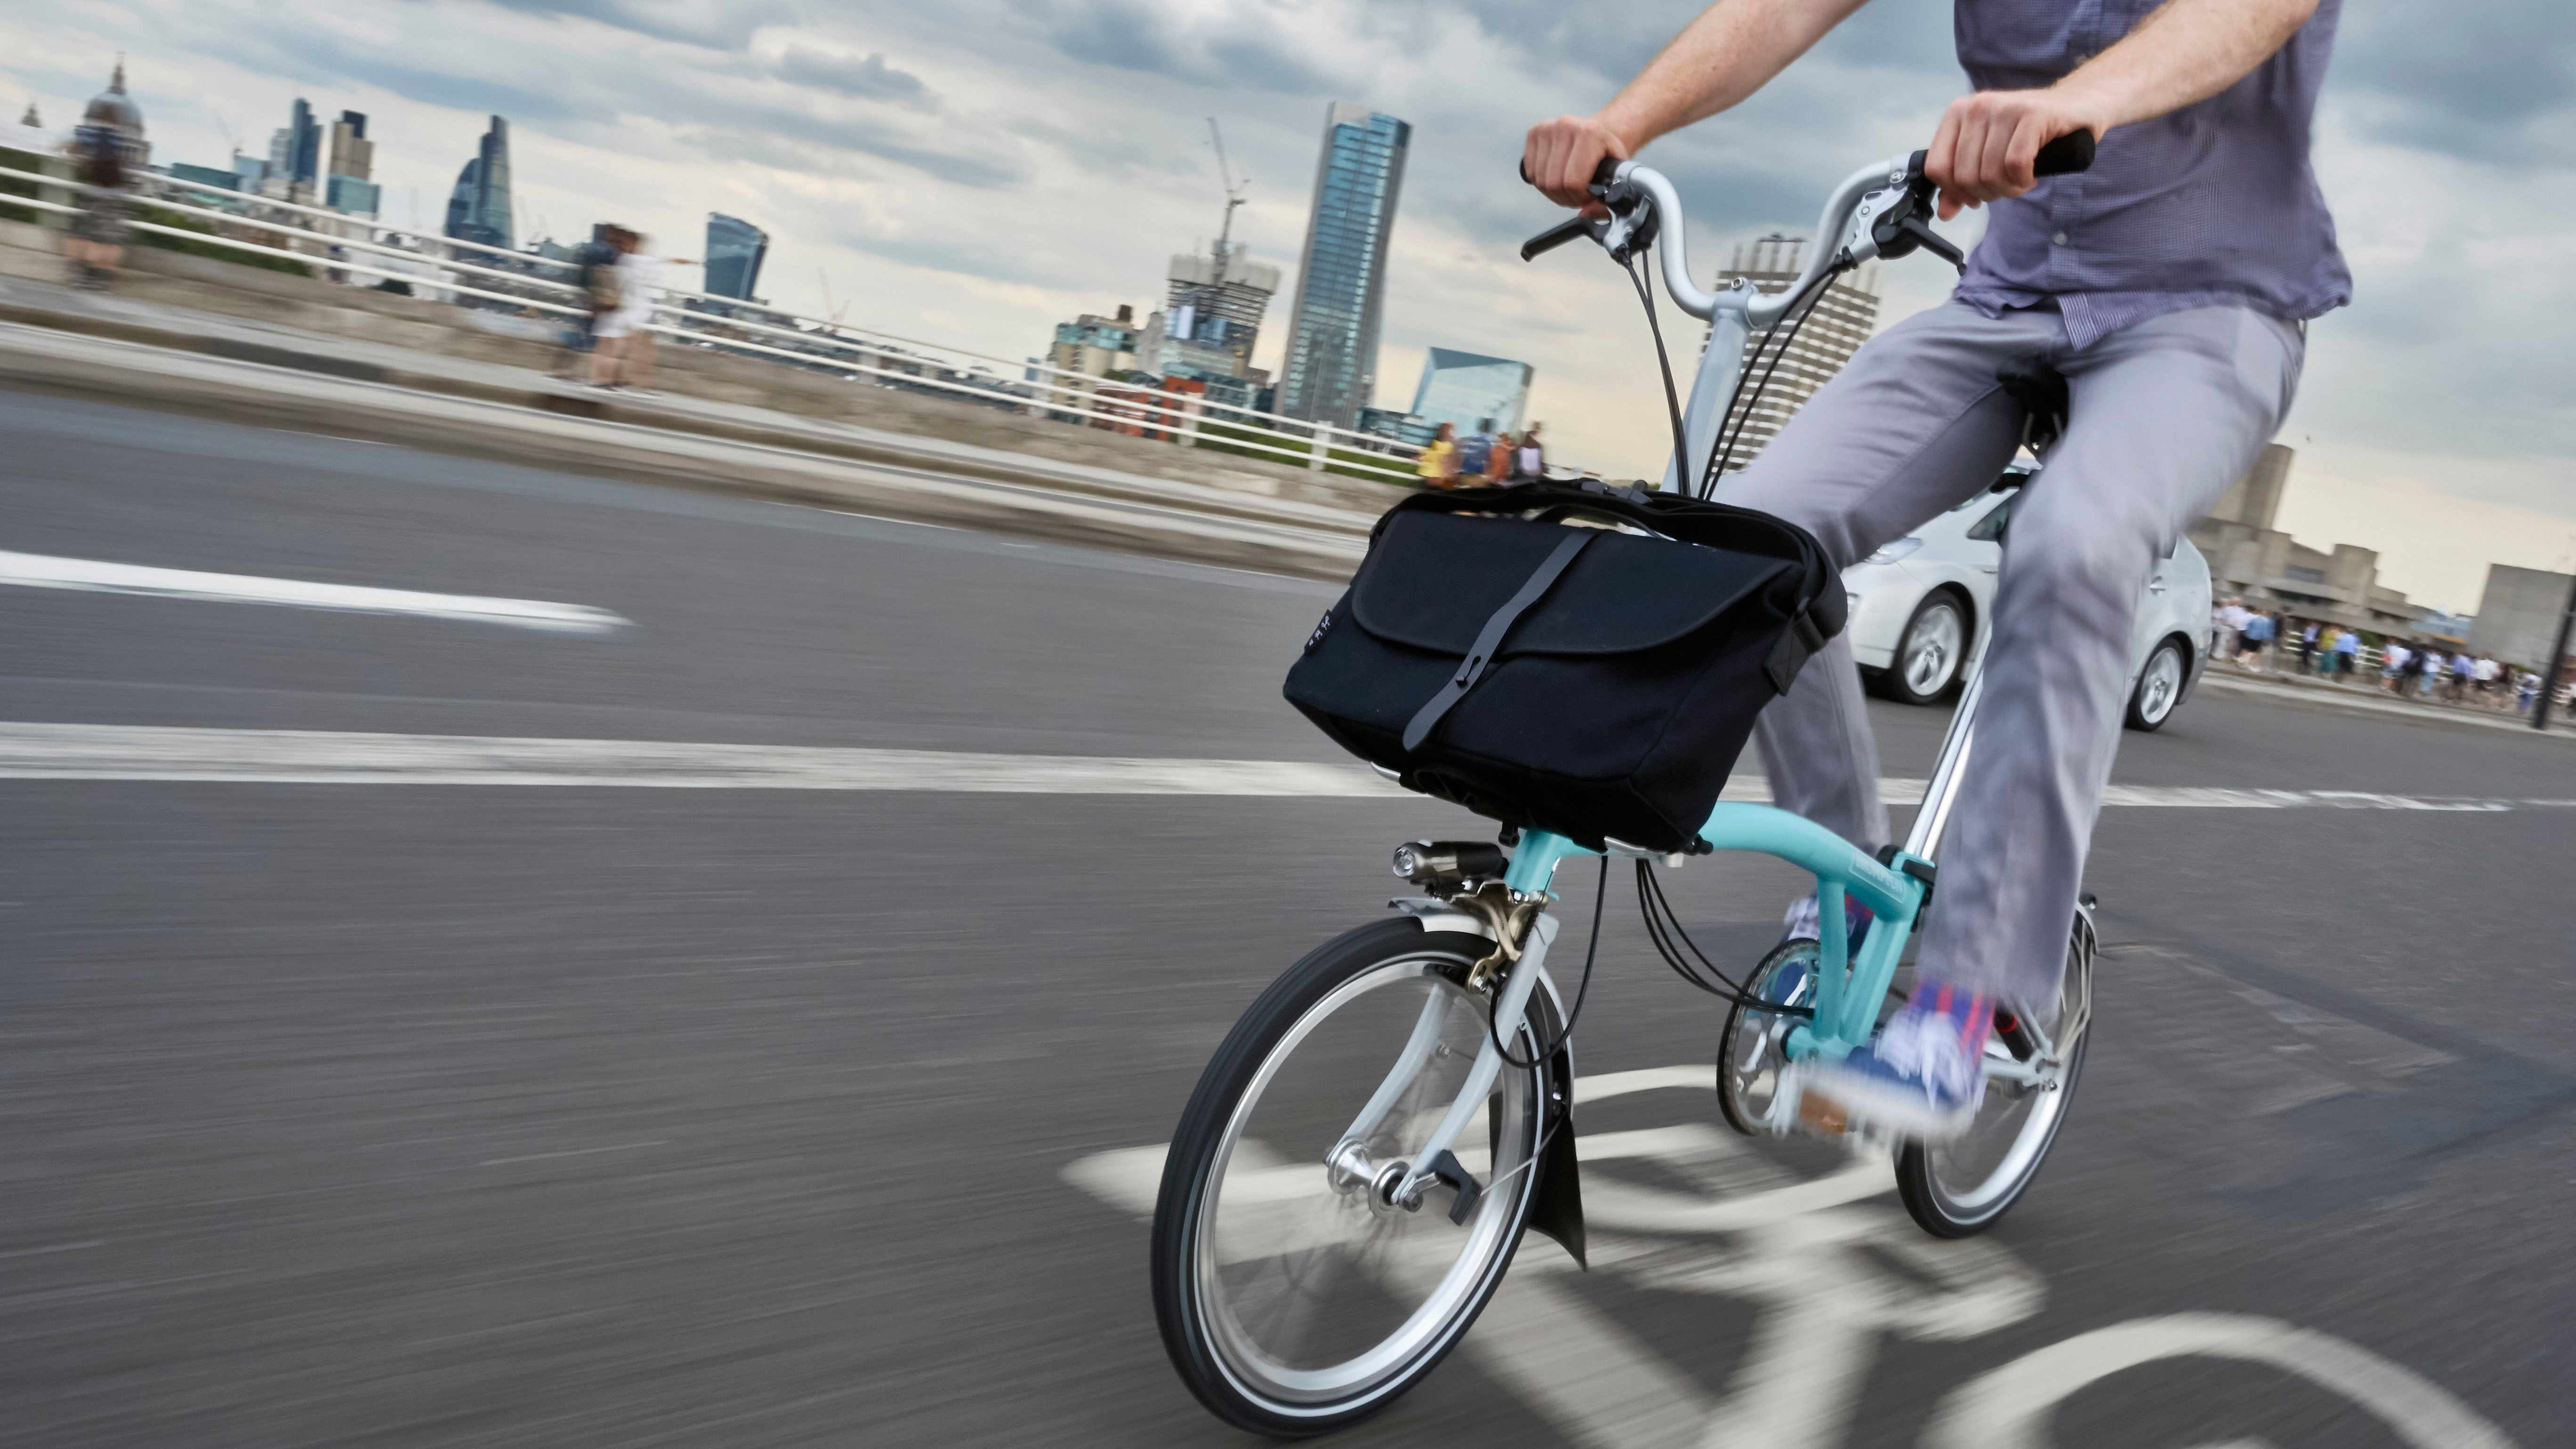 Brompton has made a variety of updates to the cockpit of its iconic bike